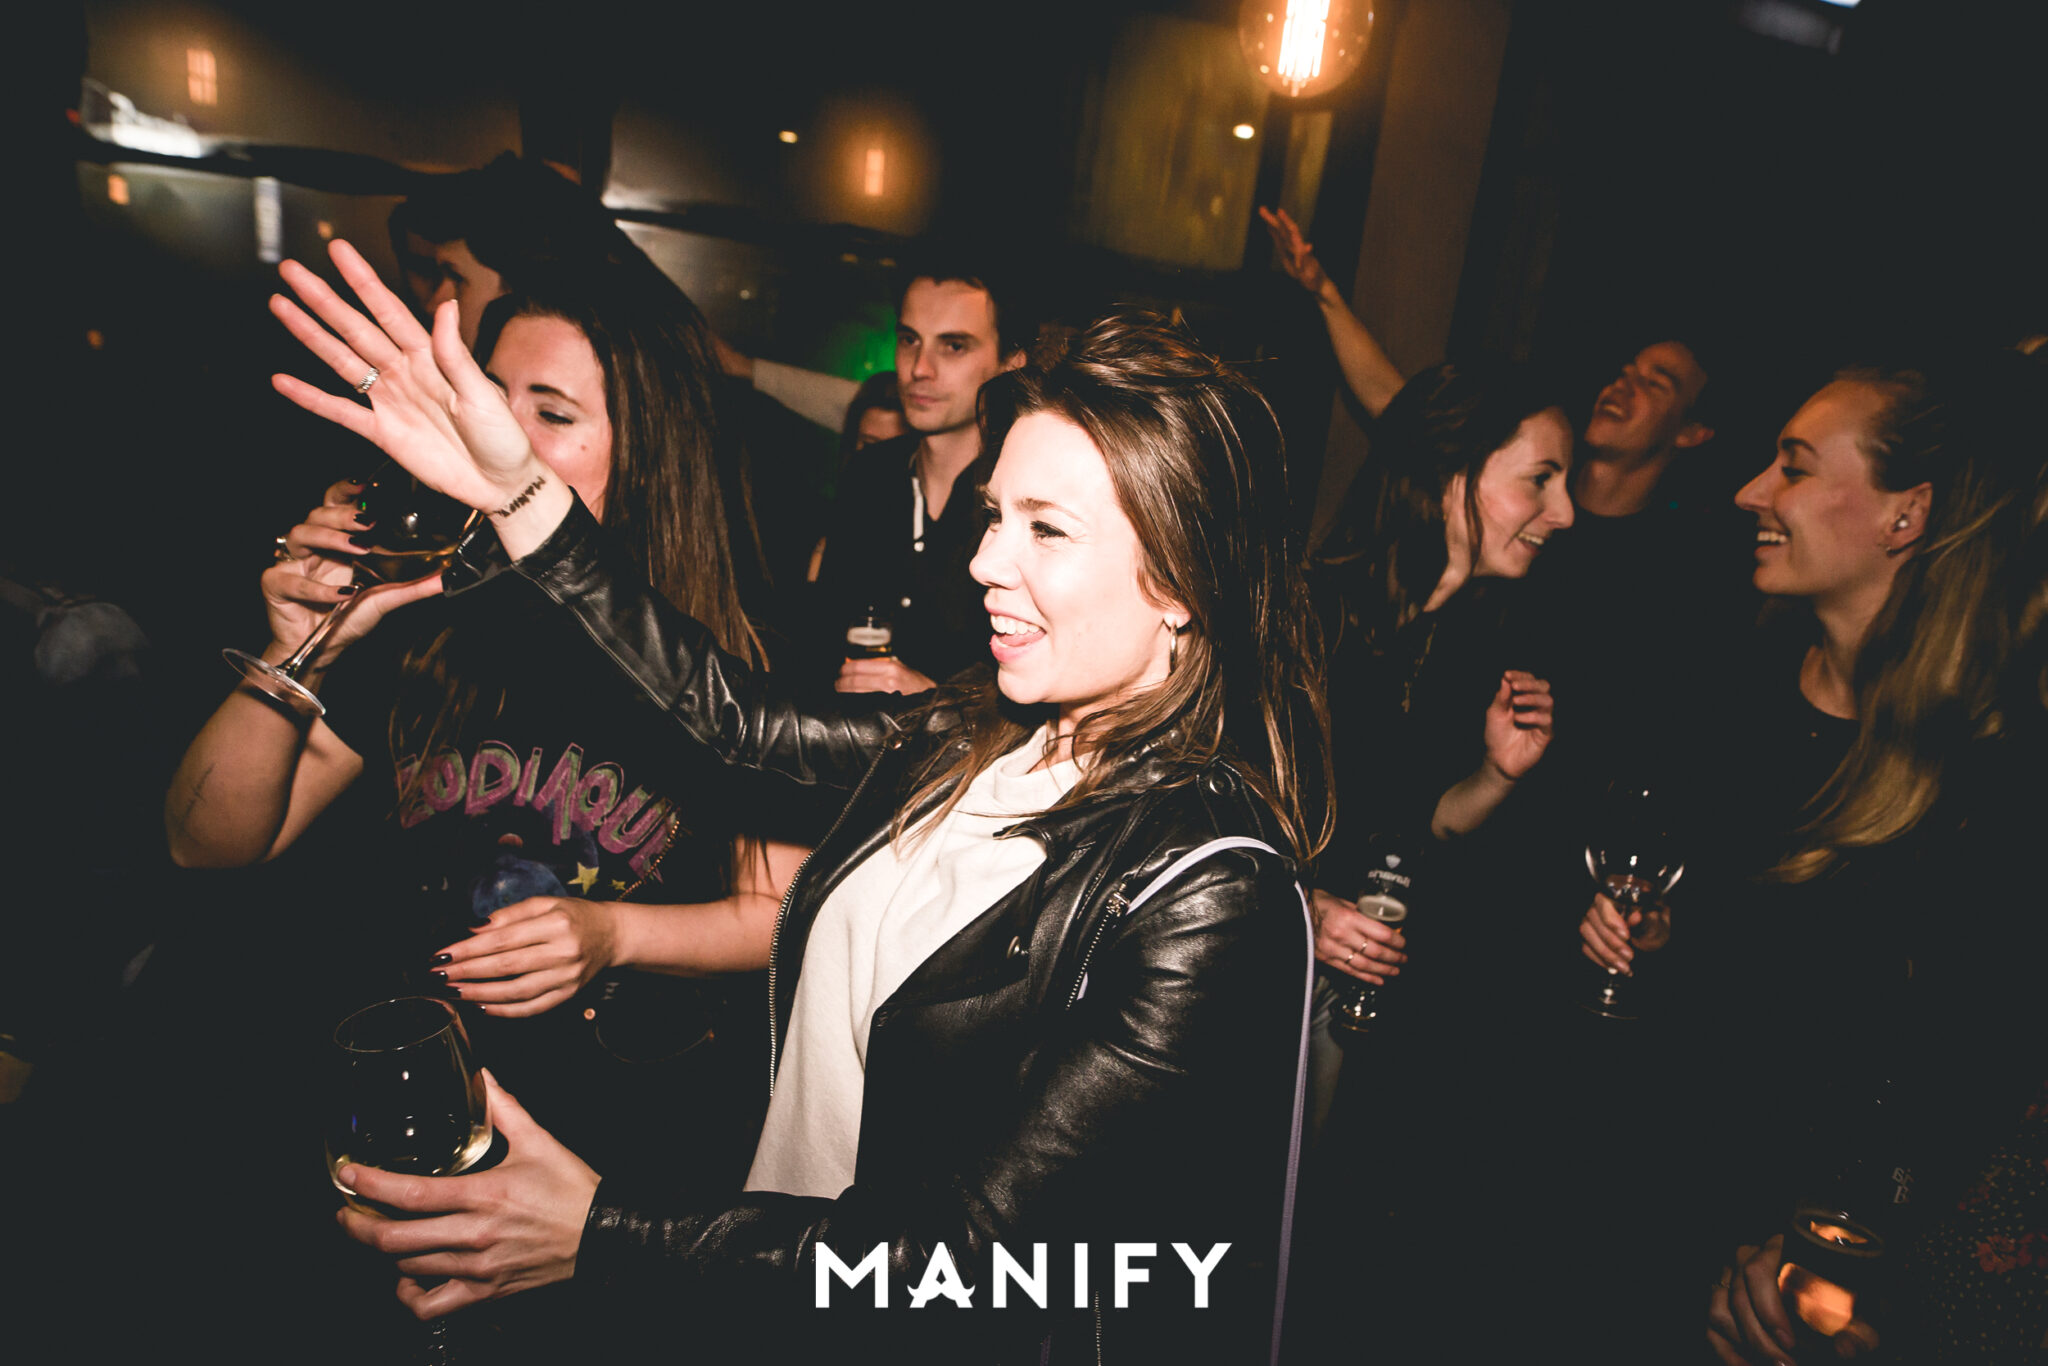 Manify_Out_of_office_Loods61_07-01-20_WM-62